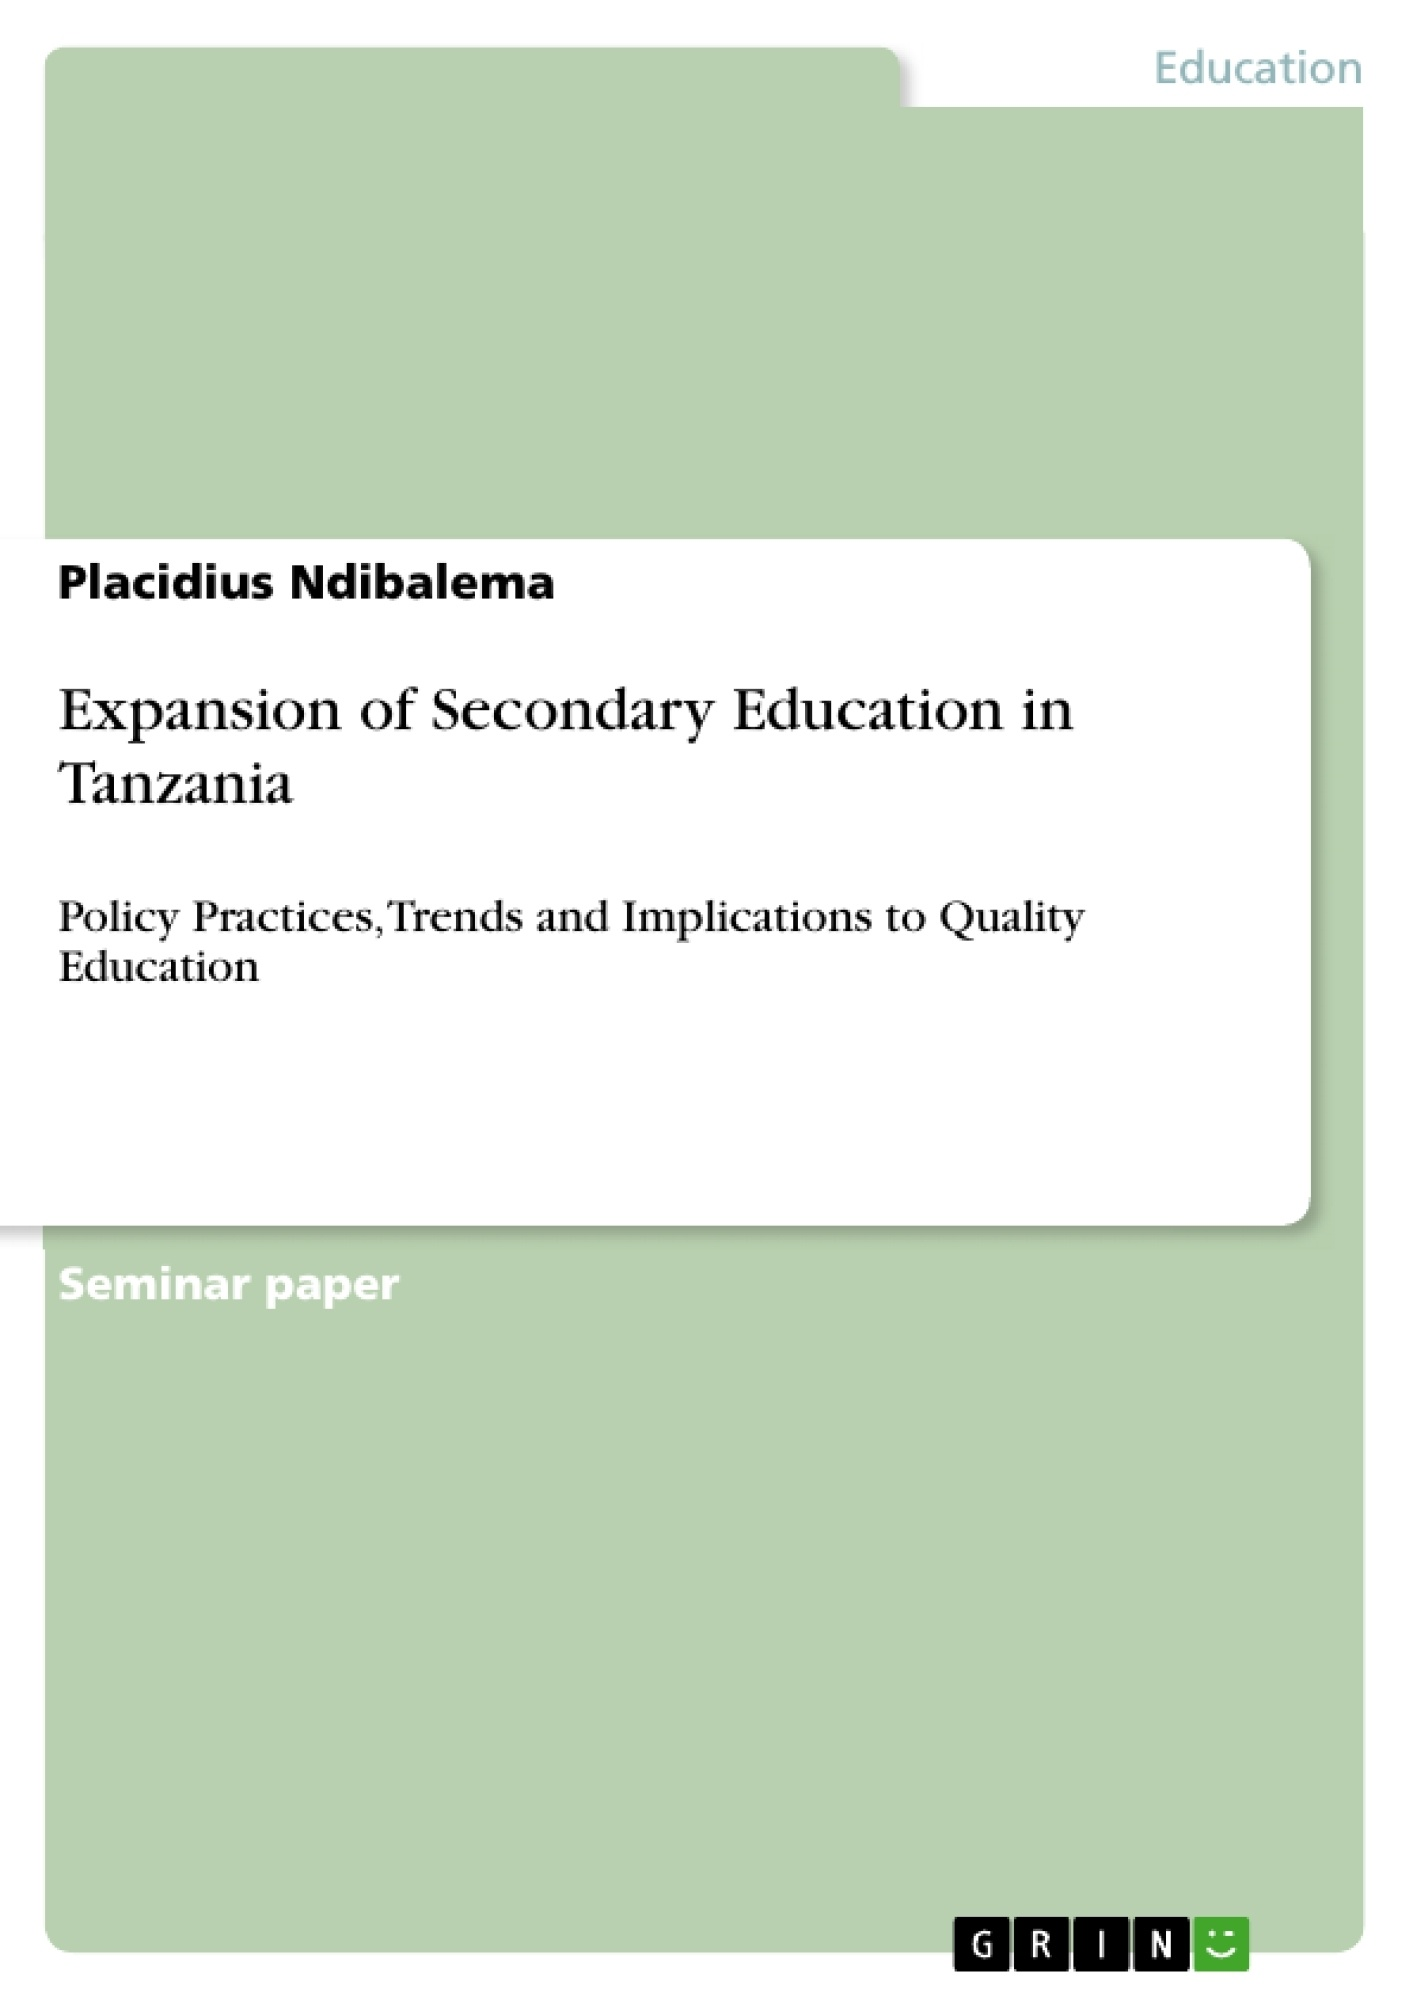 Title: Expansion of Secondary Education in Tanzania